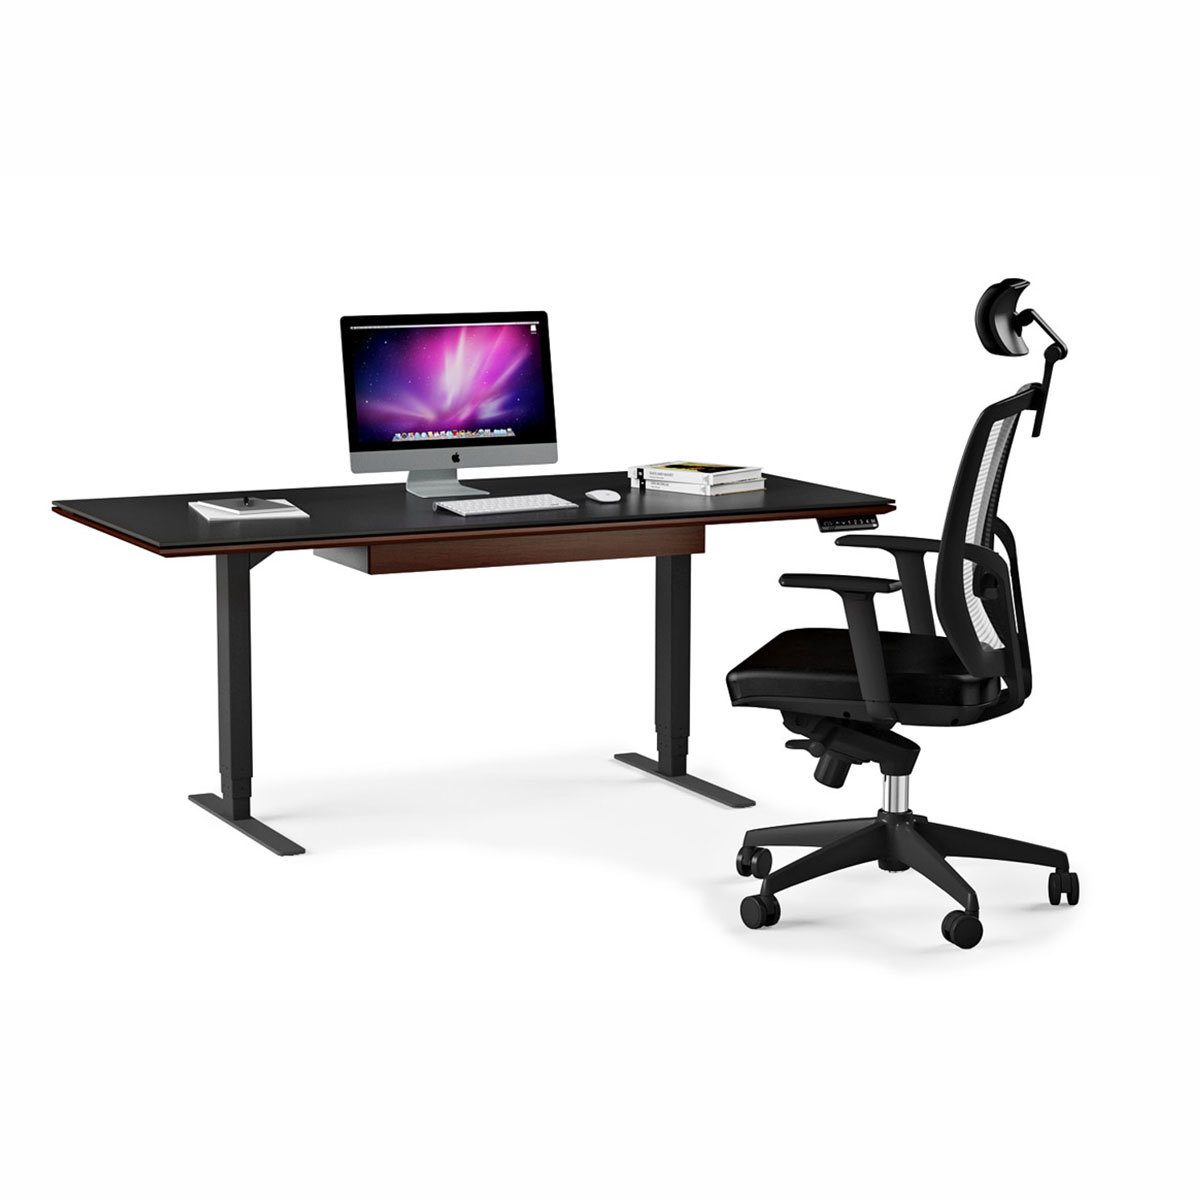 SEQUEL 40 Height Adjustable Lift Desk by BDI